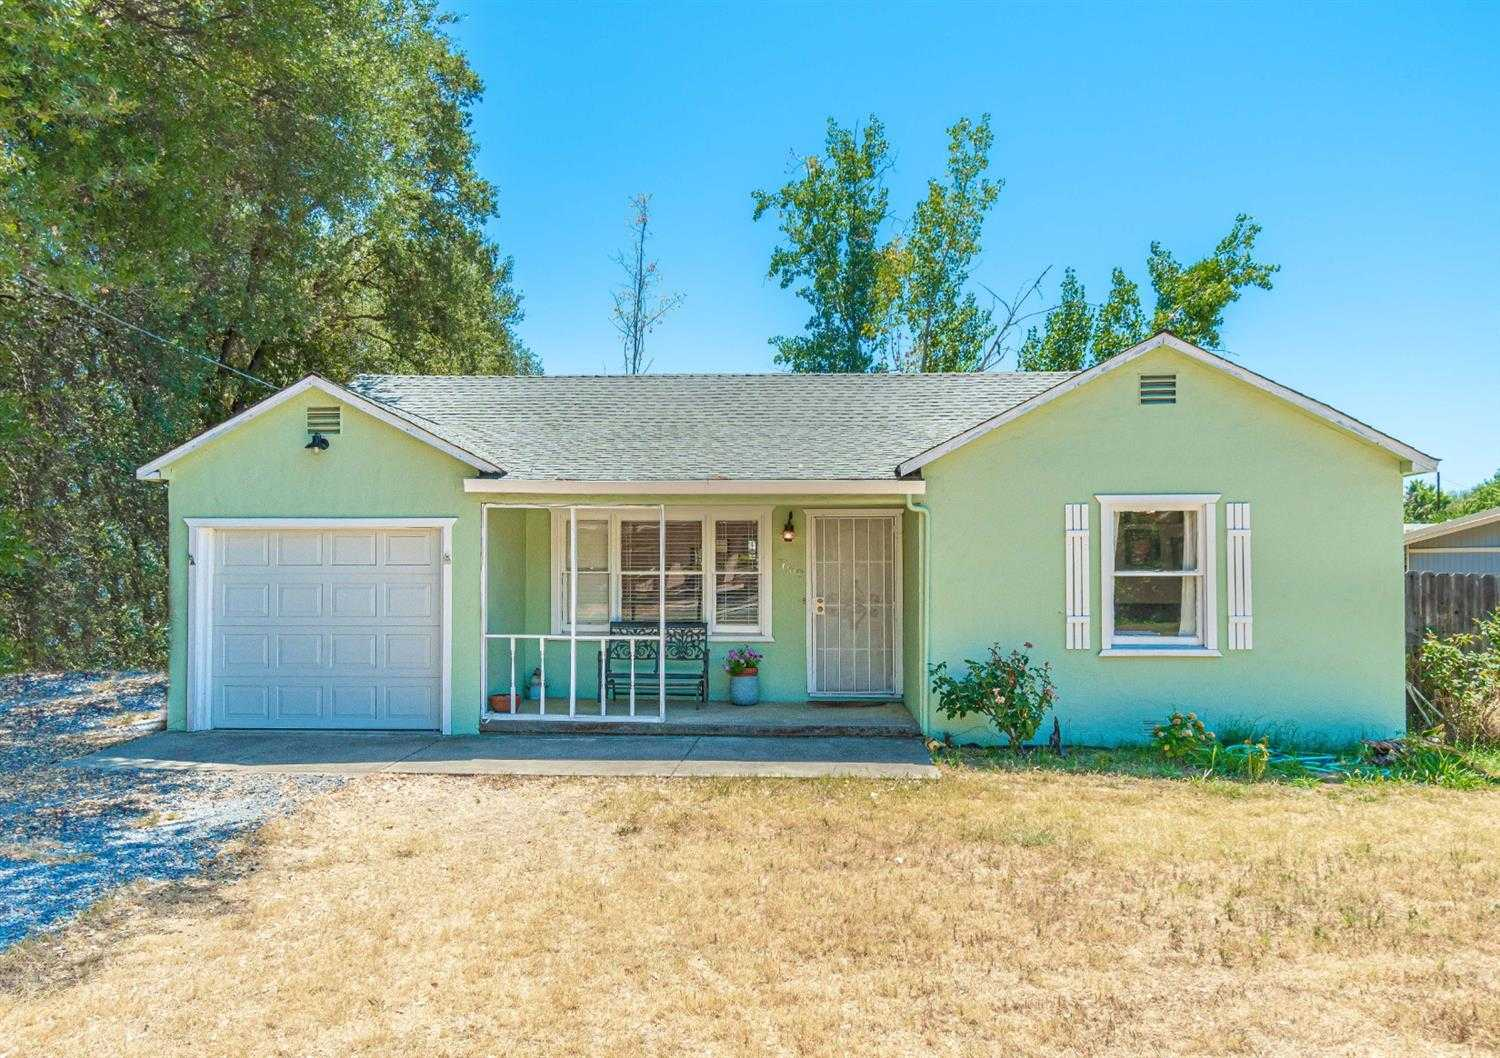 $319,000 - 2Br/1Ba -  for Sale in Citrus Heights